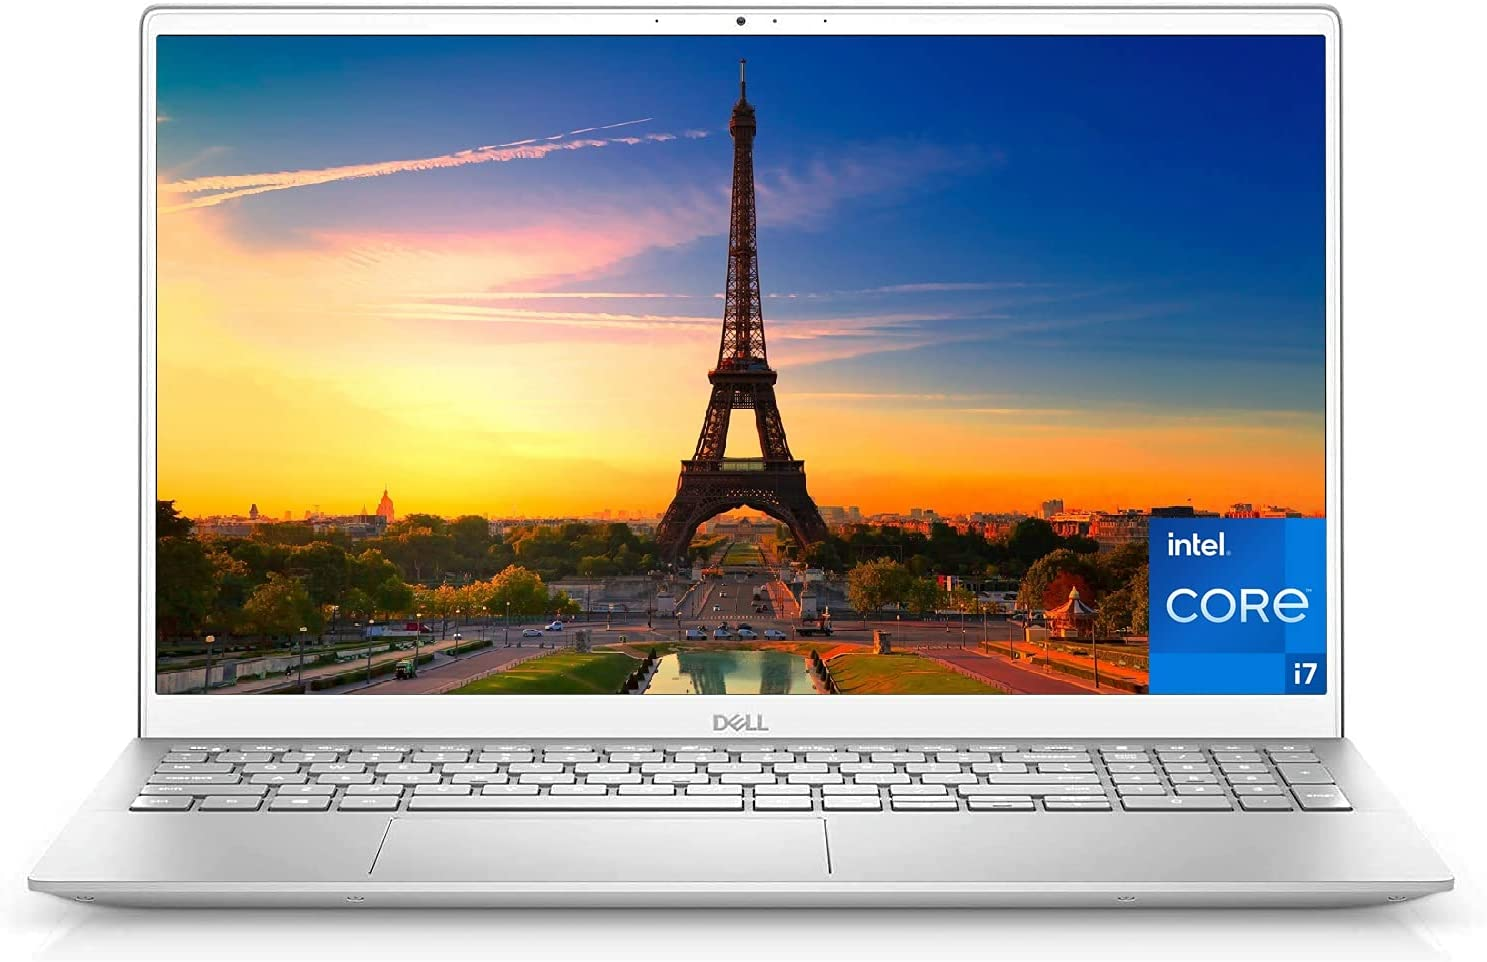 2021 Dell Newest Inspiron 5000 Series 15.6'' FHD Laptop, Intel Core i7-1165G7, 32GB RAM 1TB PCIe SSD, Webcam, Backlit Keyboard, FP Reader, Windows 10 Home